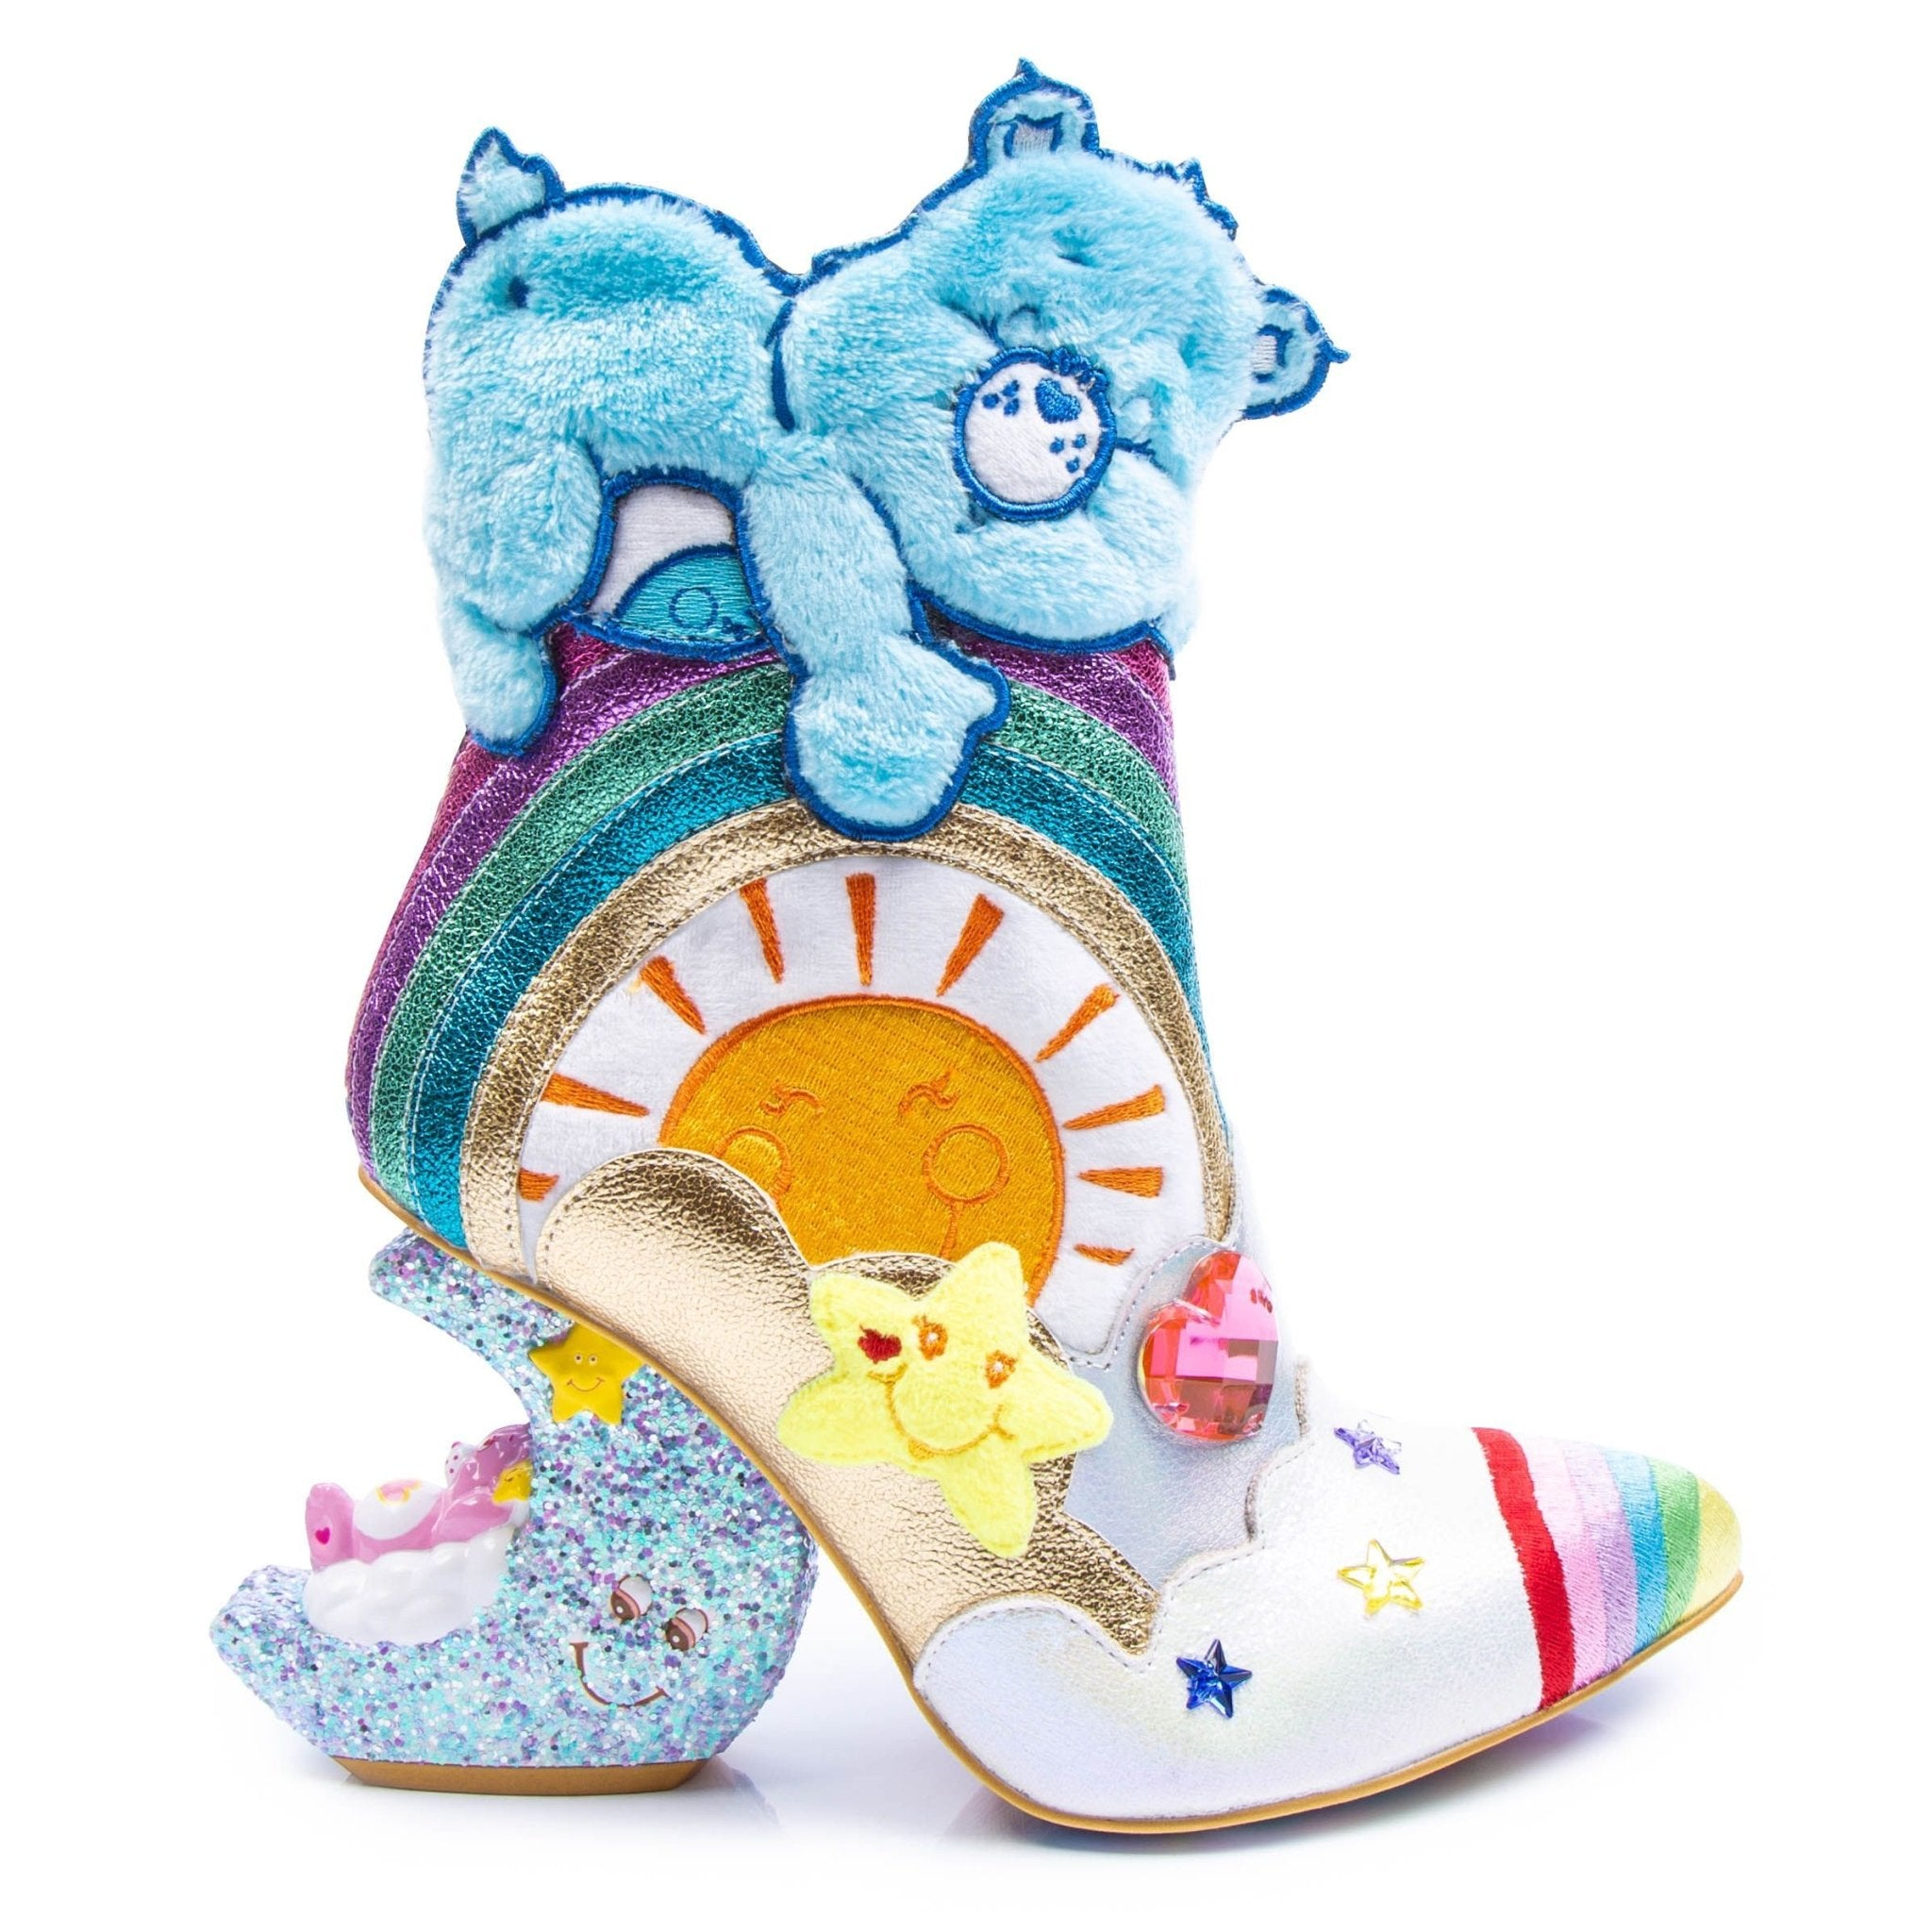 I Like Sleep Irregular Choice - Rockamilly-Shoes-Vintage